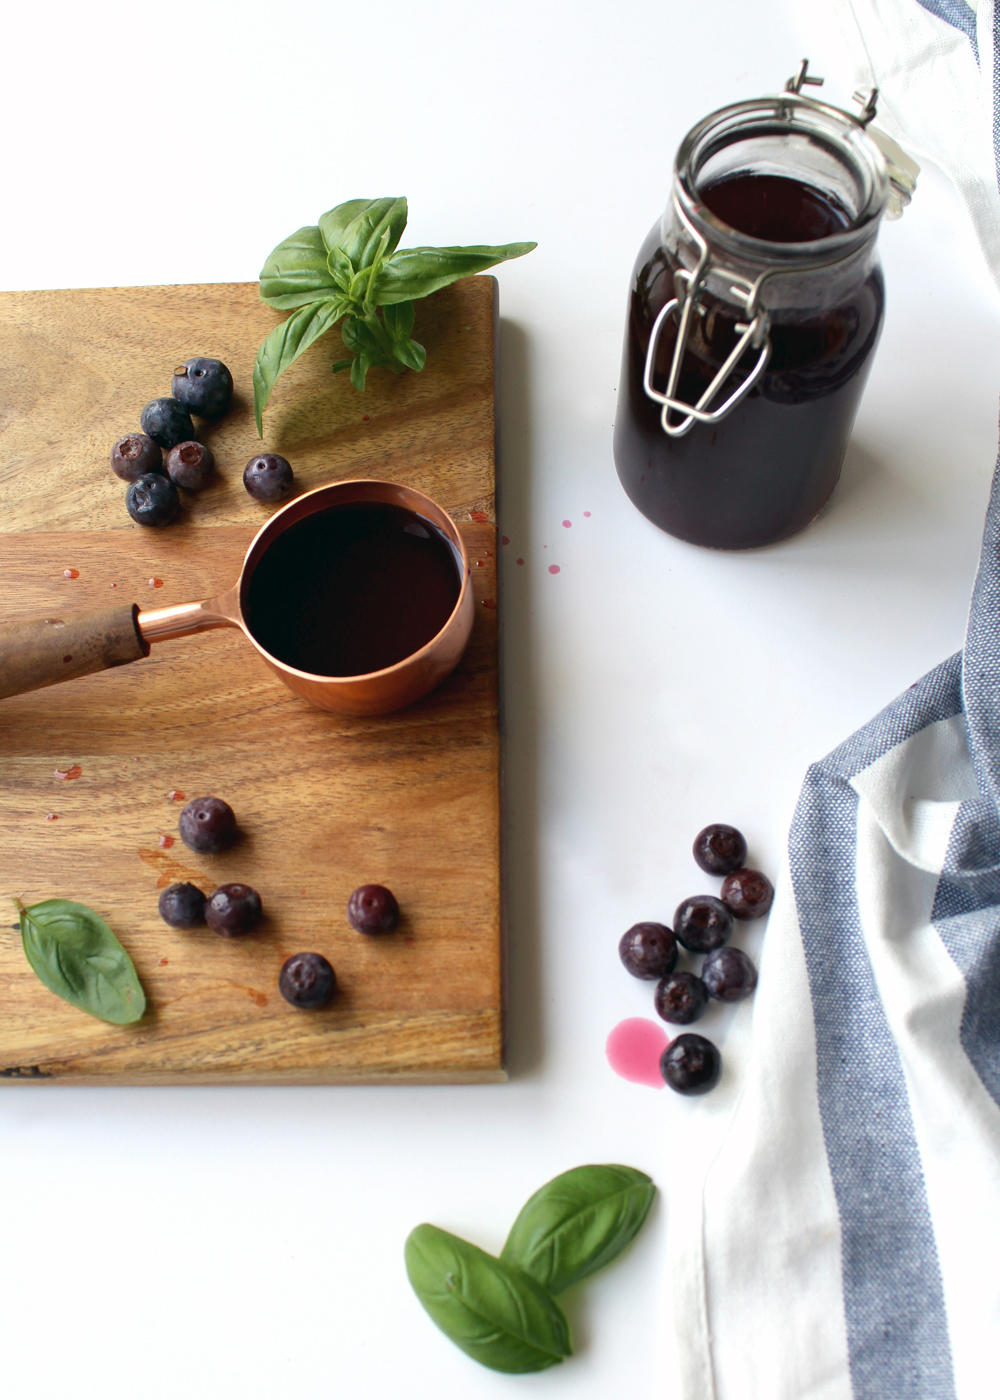 learn how to make this simple blueberry basil syrup in under 10 minutes